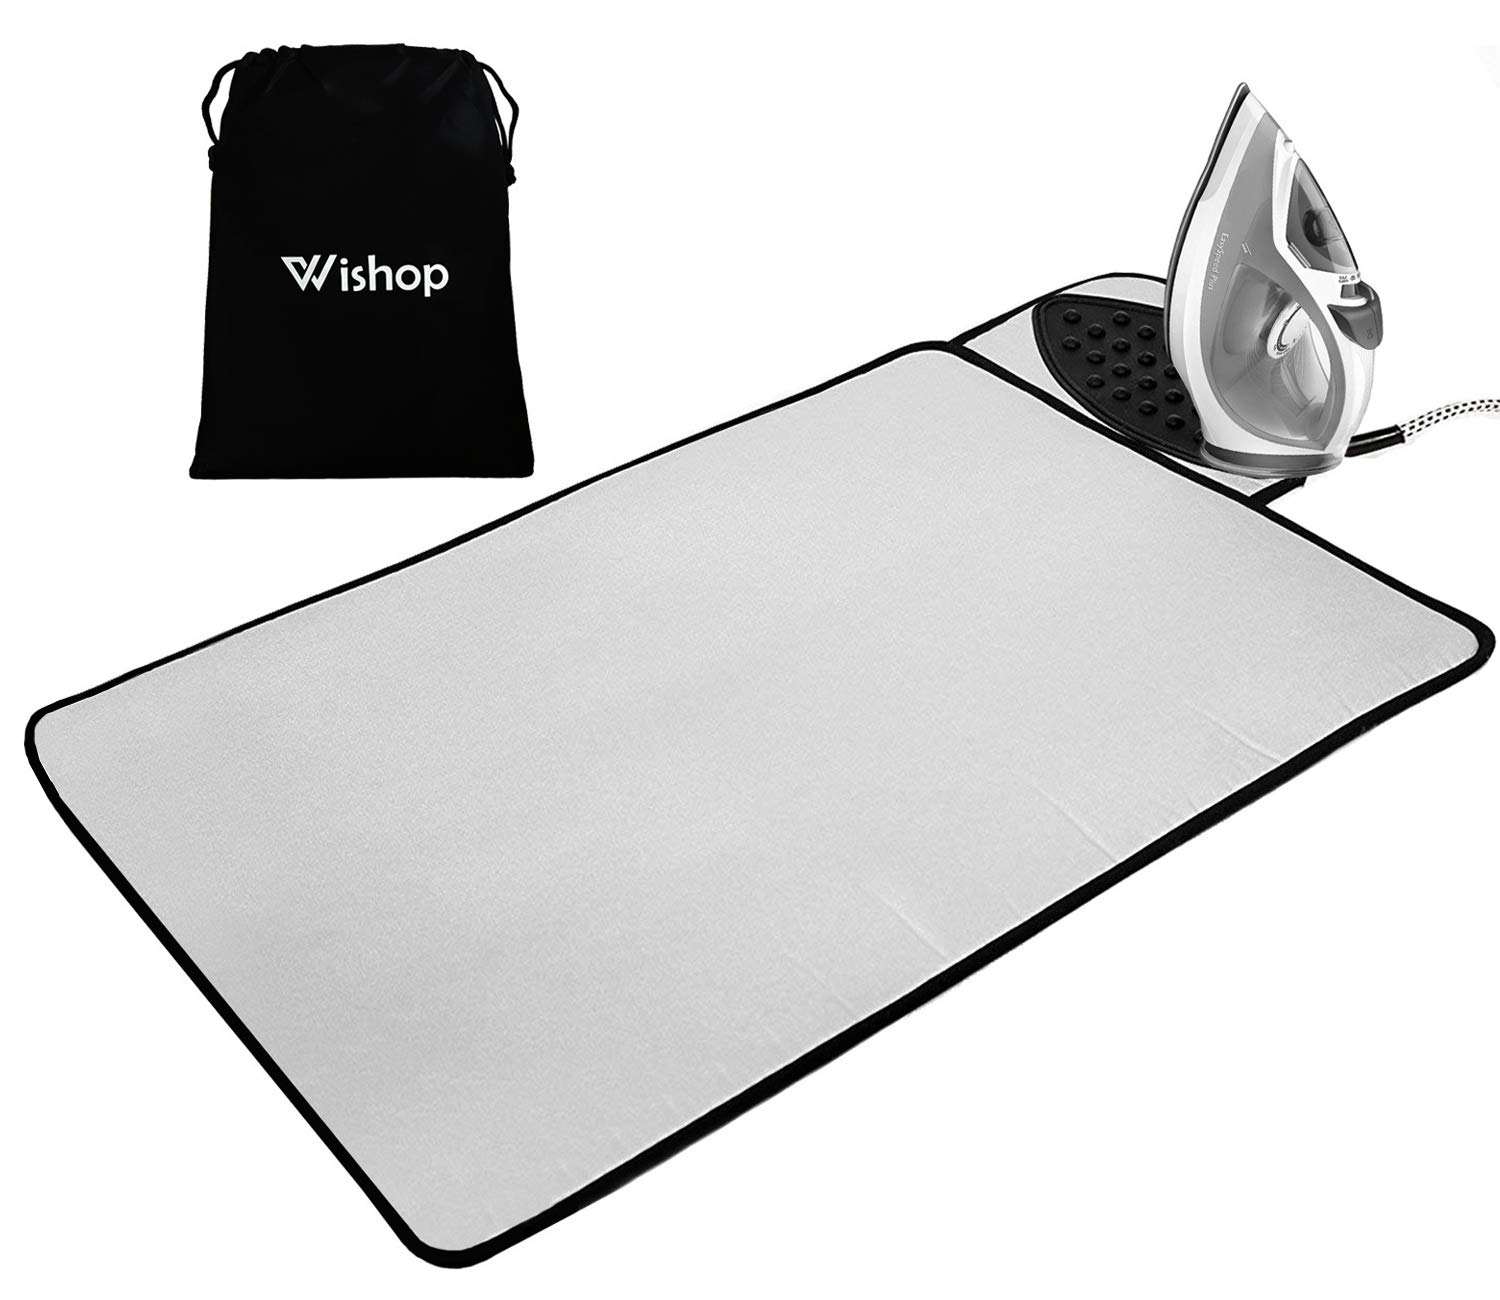 WISHOP Ironing Mat with Silicone Pad Heat Resistant Ironing Blanket, Thick Portable Travel Ironing Pad and Drawstring Bag